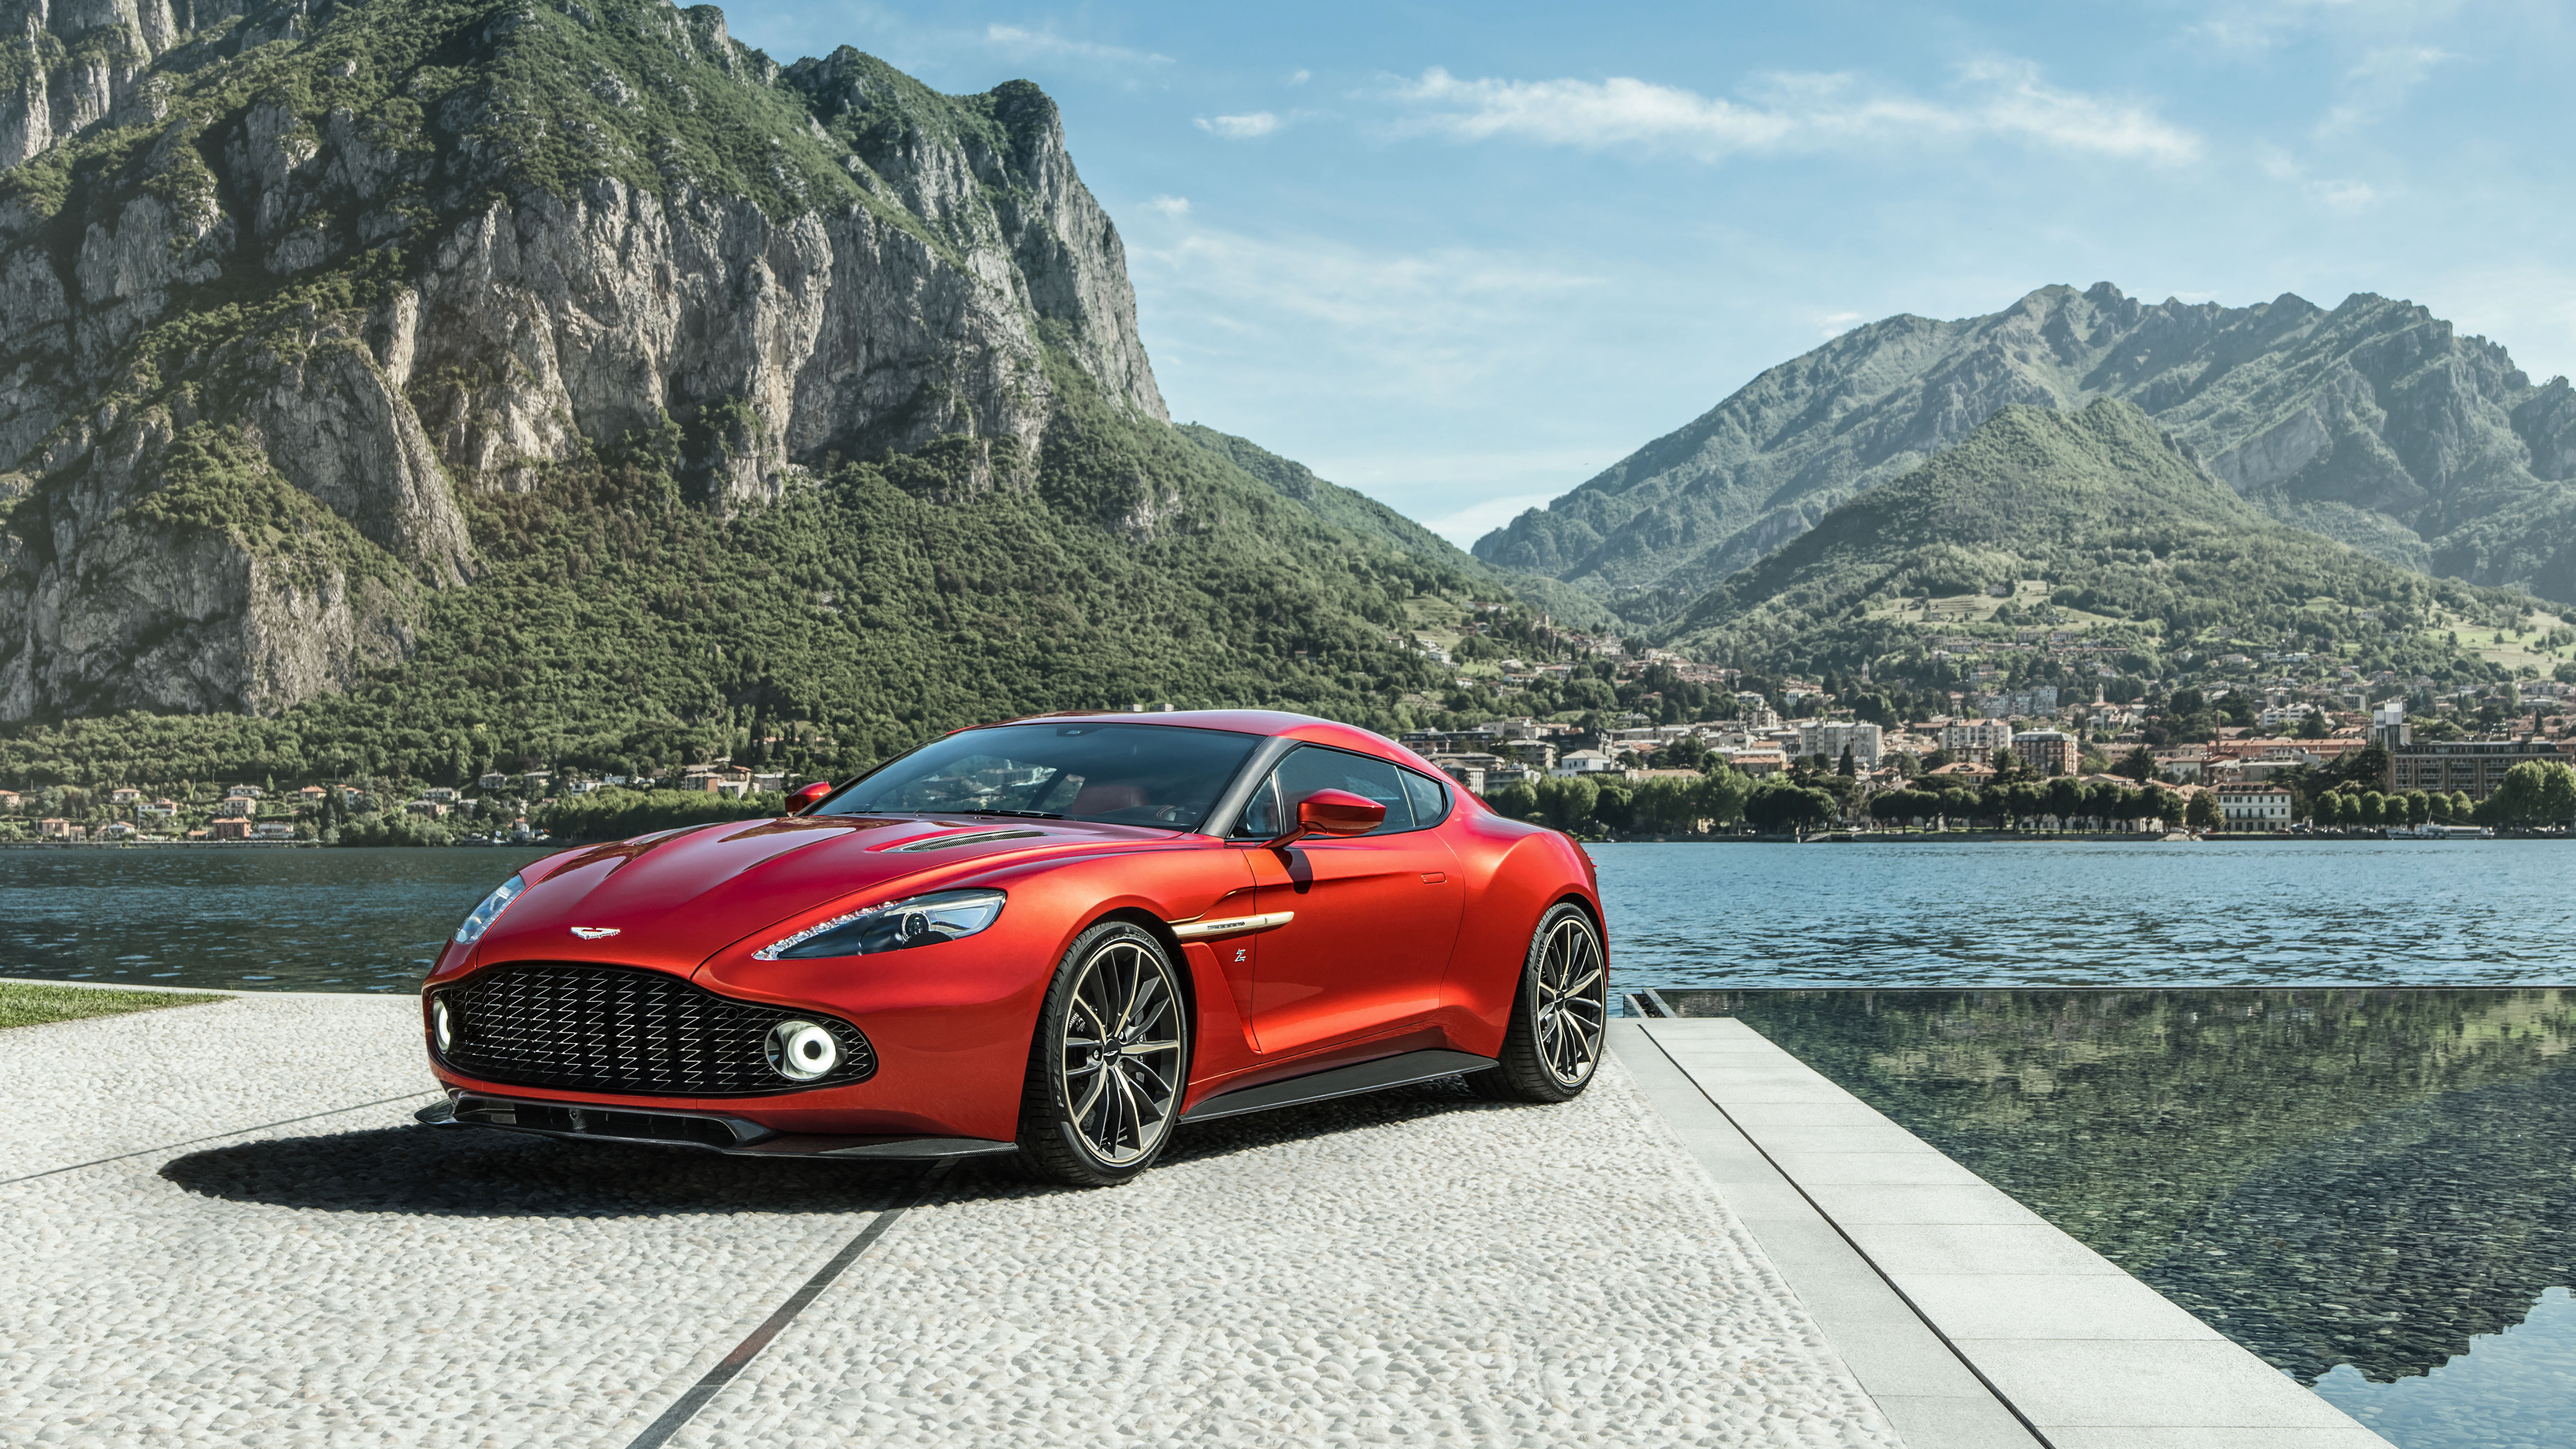 2017 Aston Martin Vanquish Zagato 5 Wallpaper | HD Car ...